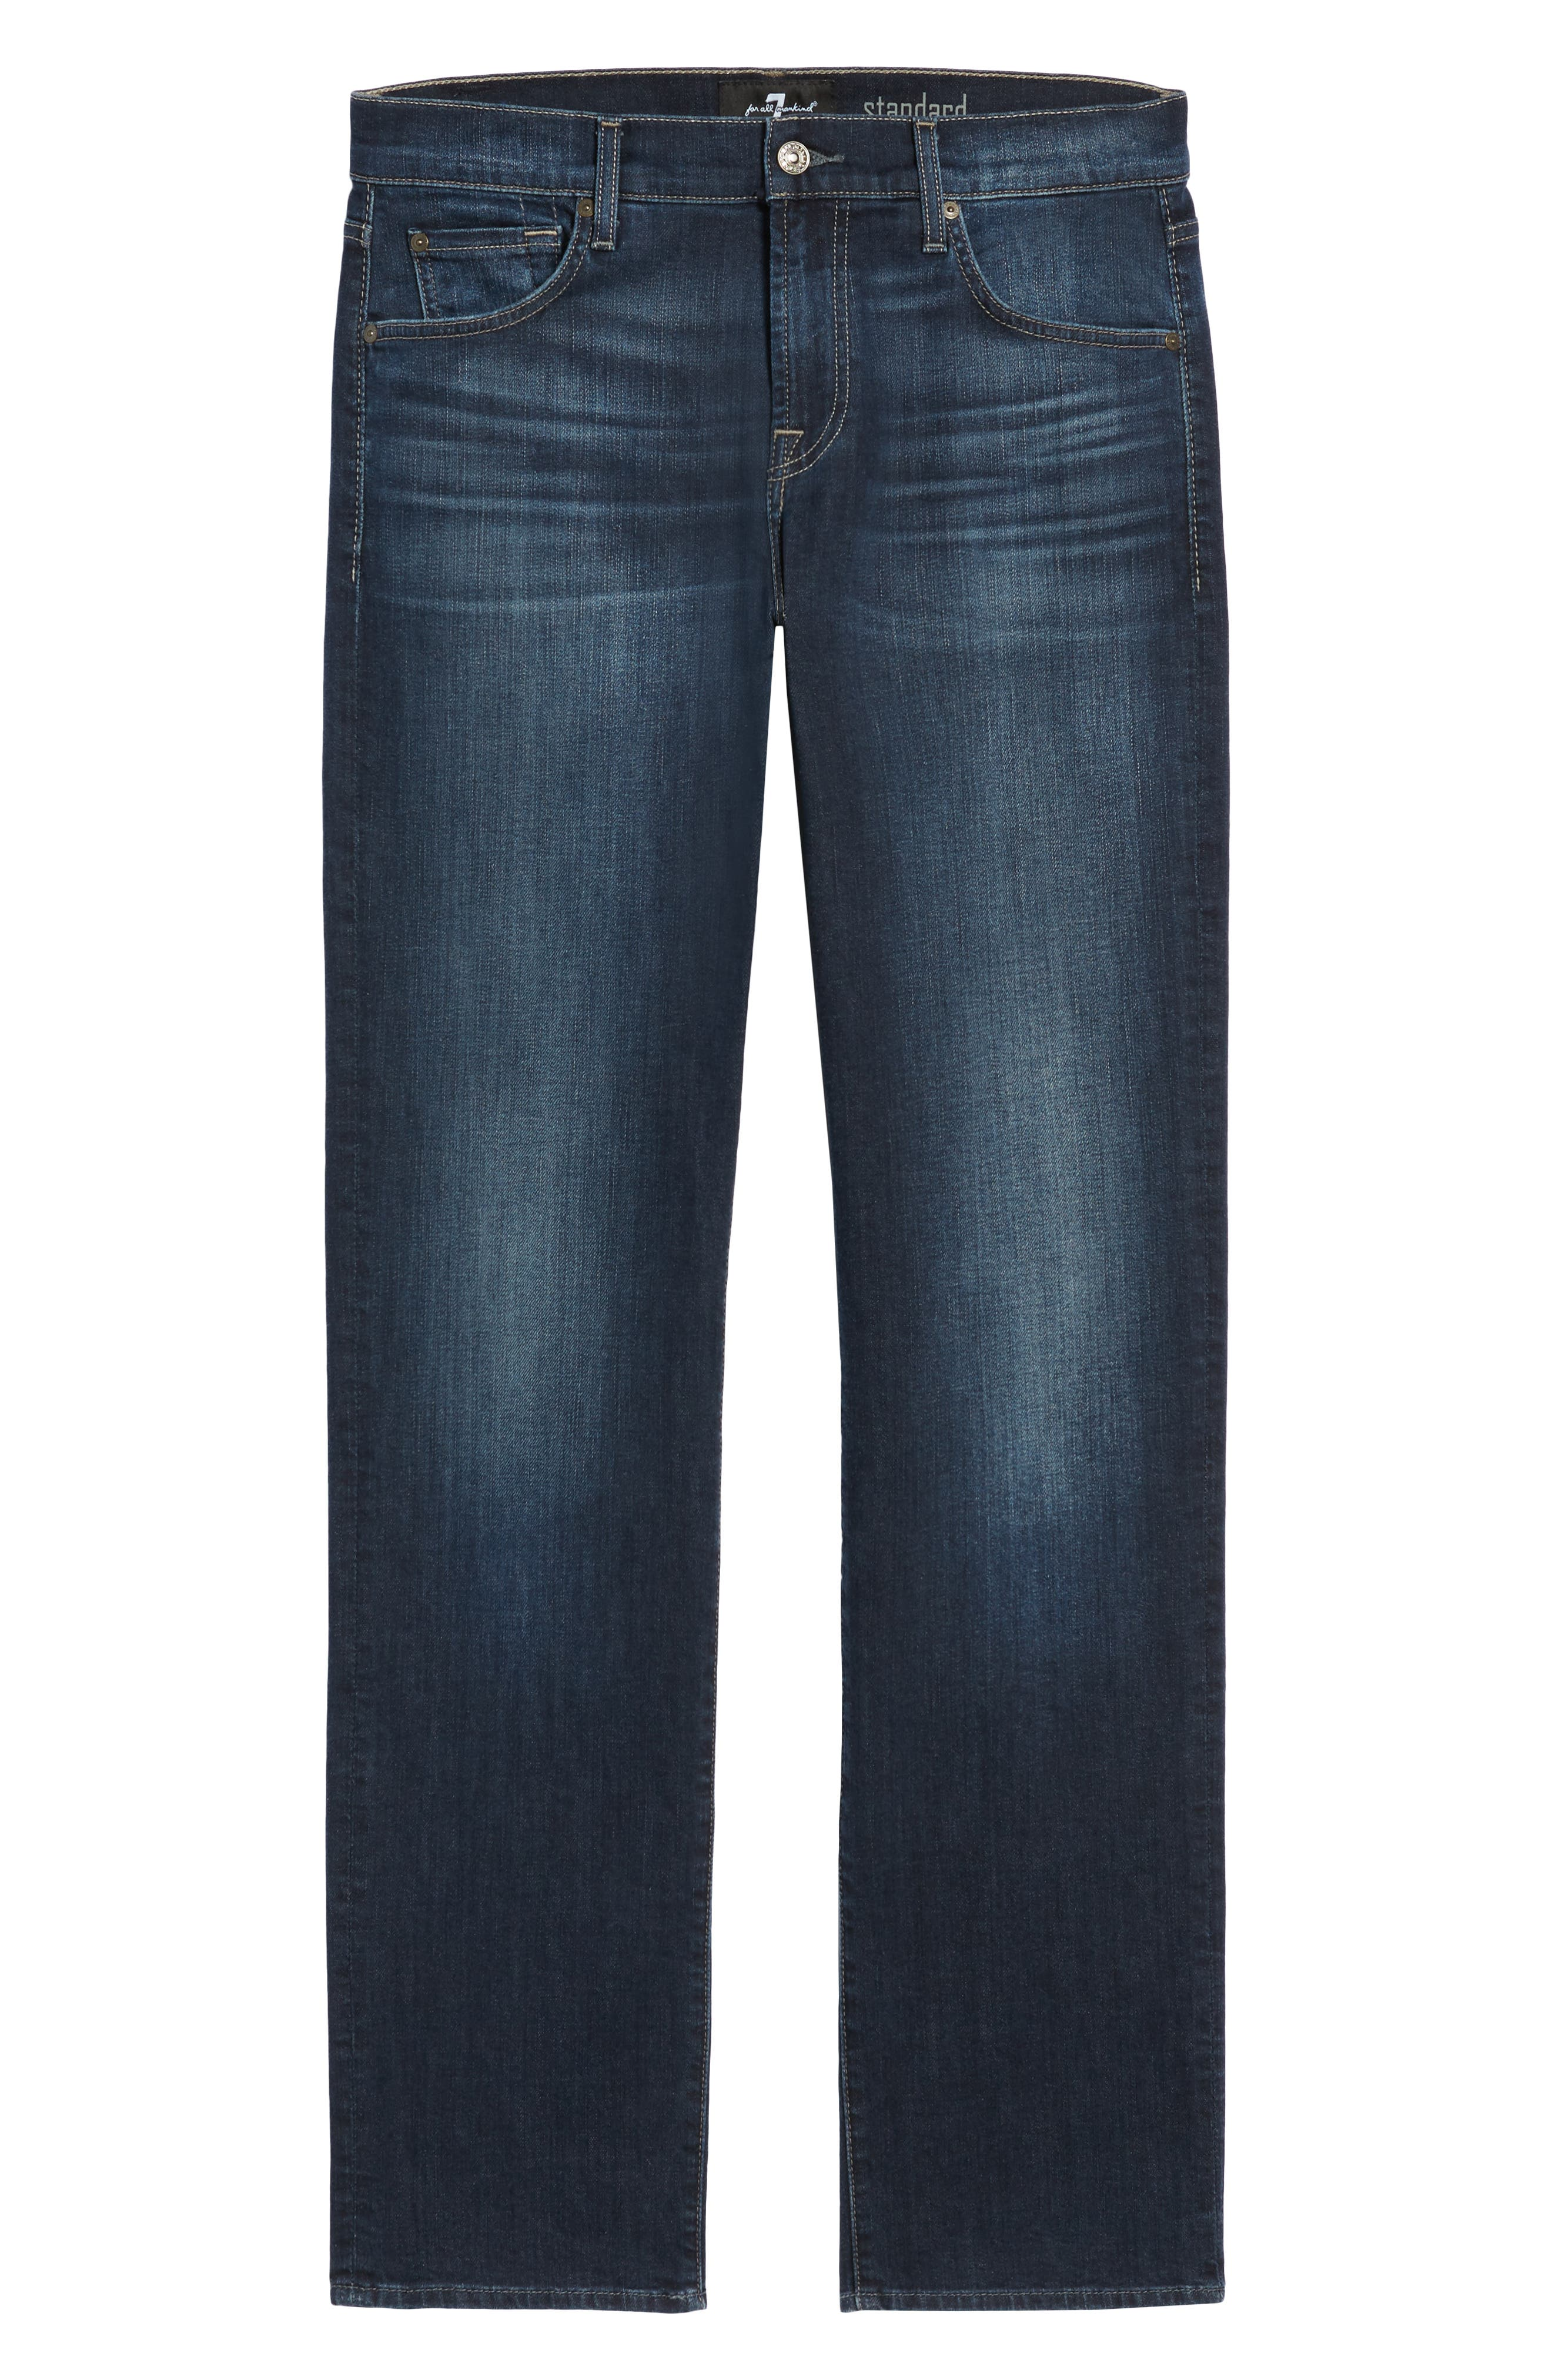 Standard Fit Straight Leg Jeans,                             Alternate thumbnail 6, color,                             JUSTICE